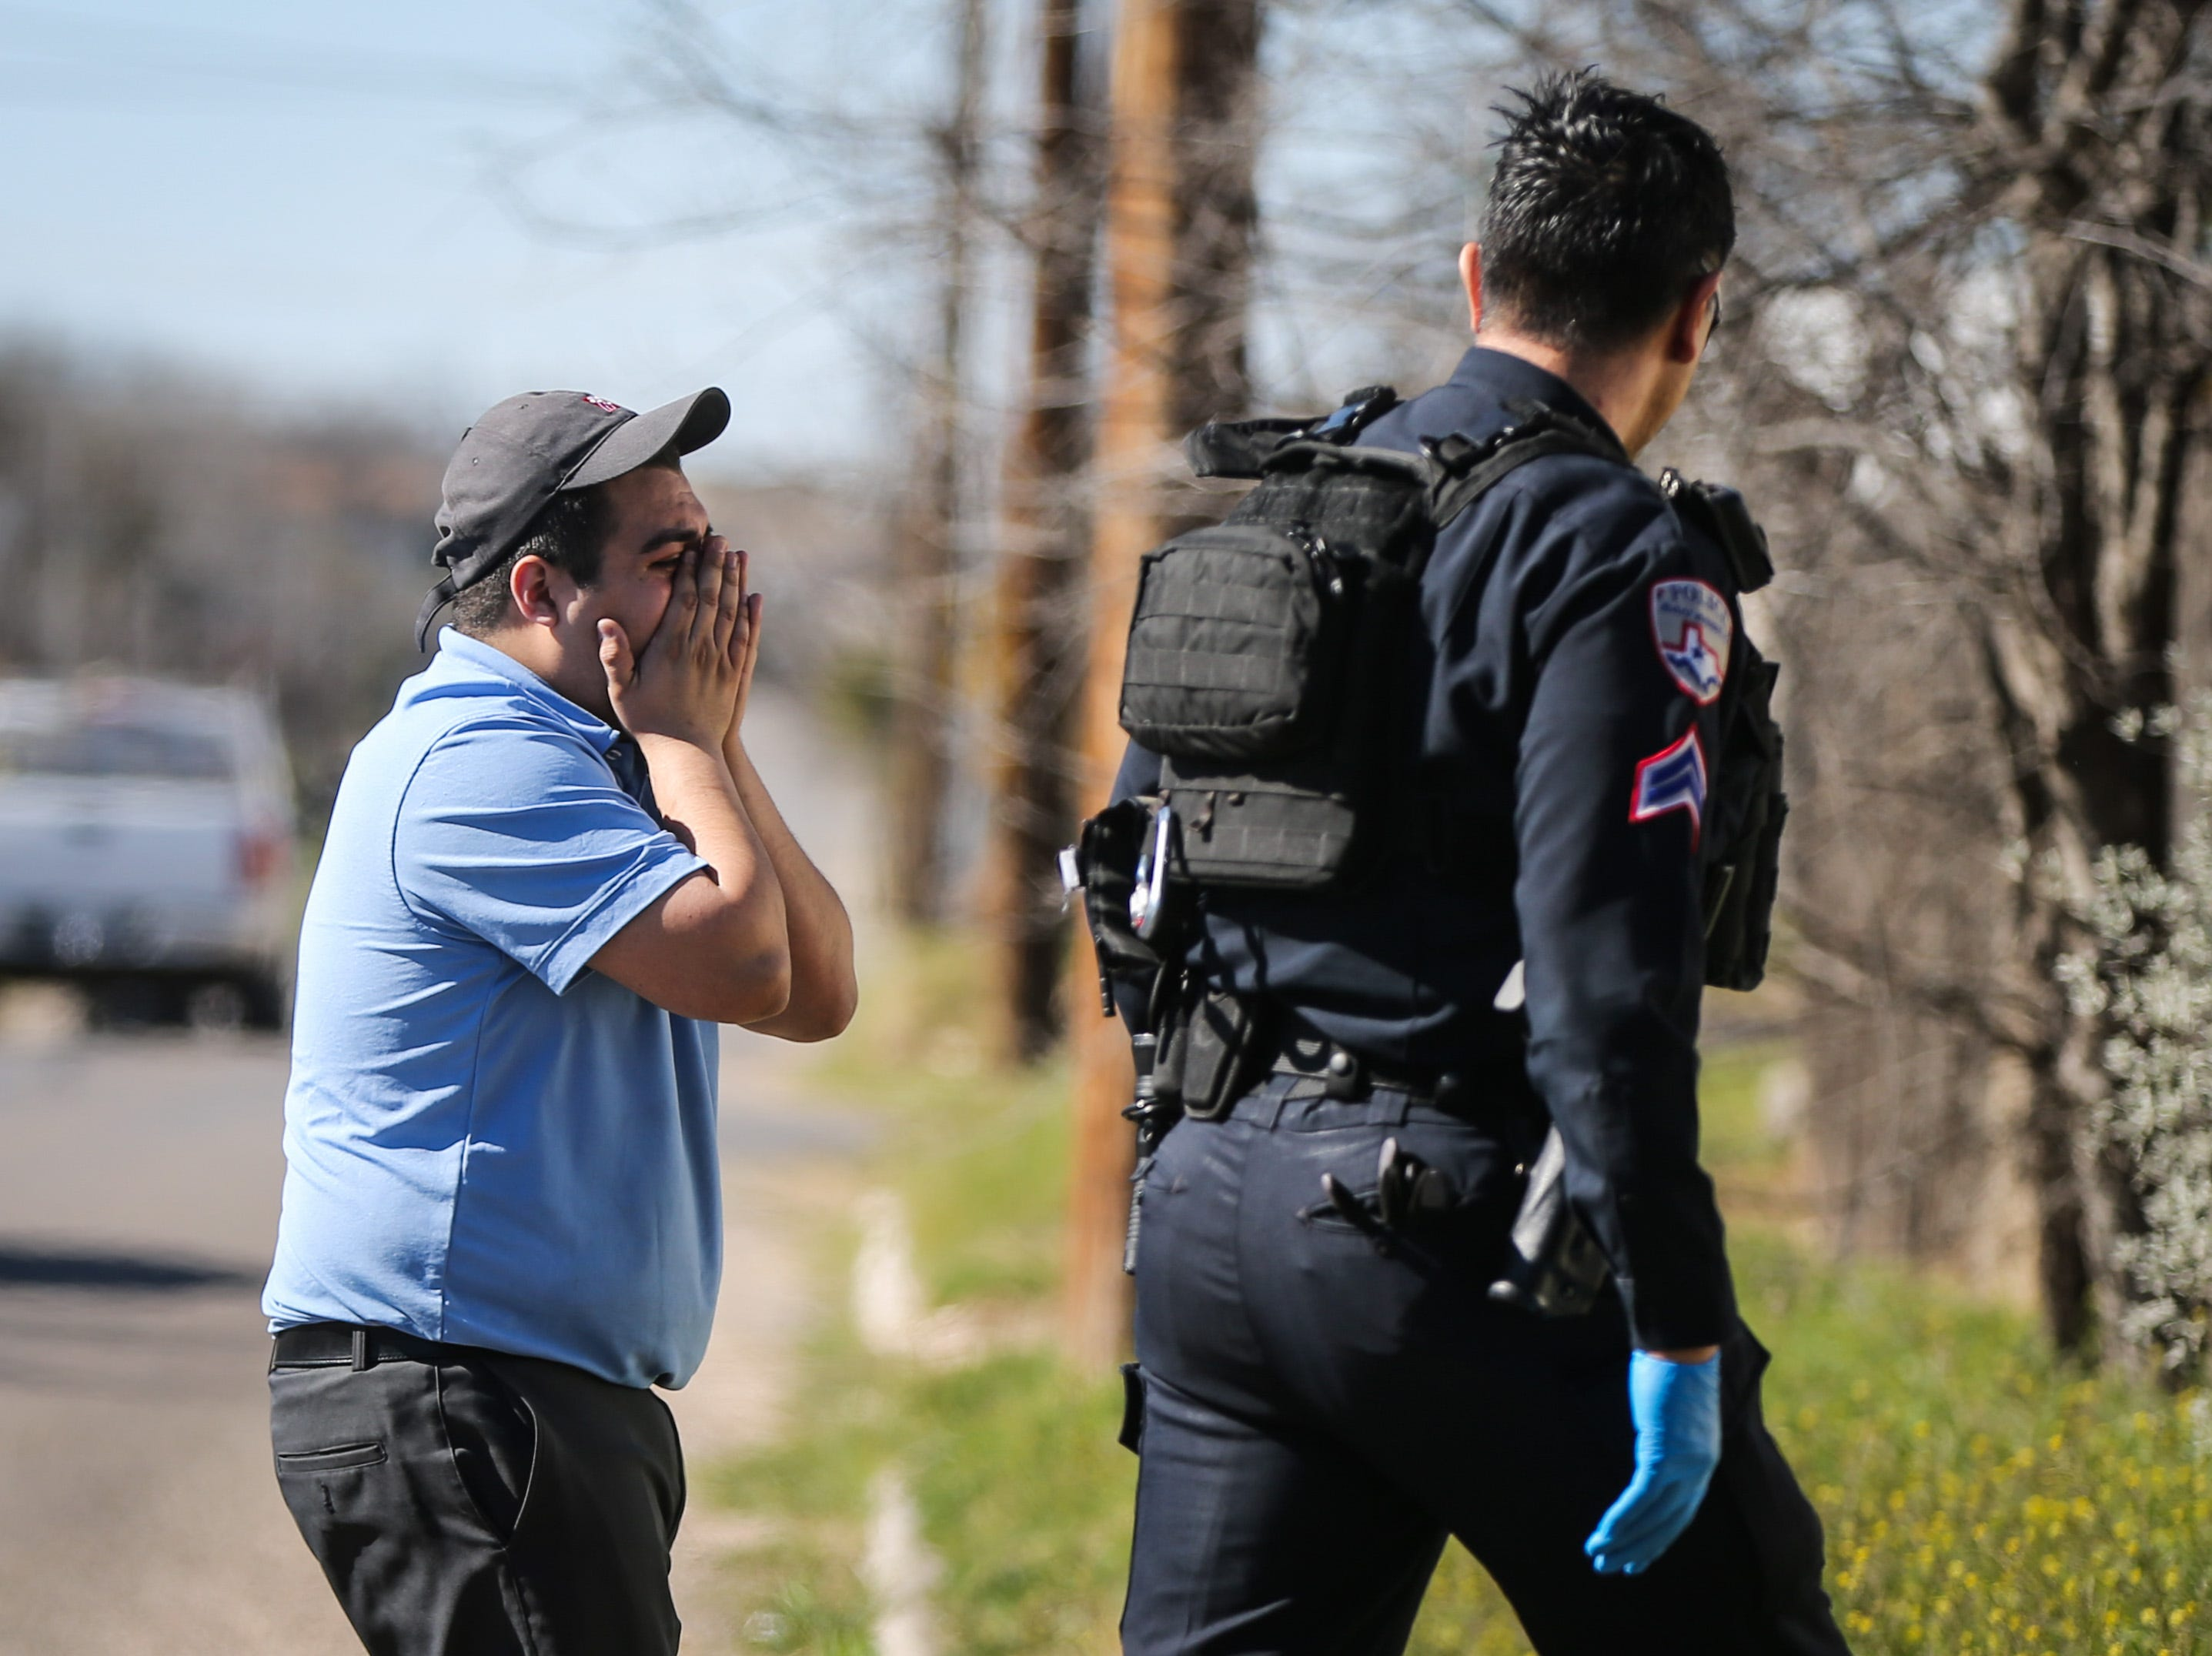 A person reacts at a scene of a fatal shooting Tuesday, March 19, 2019, at 2000 block of Bailey in San Angelo.